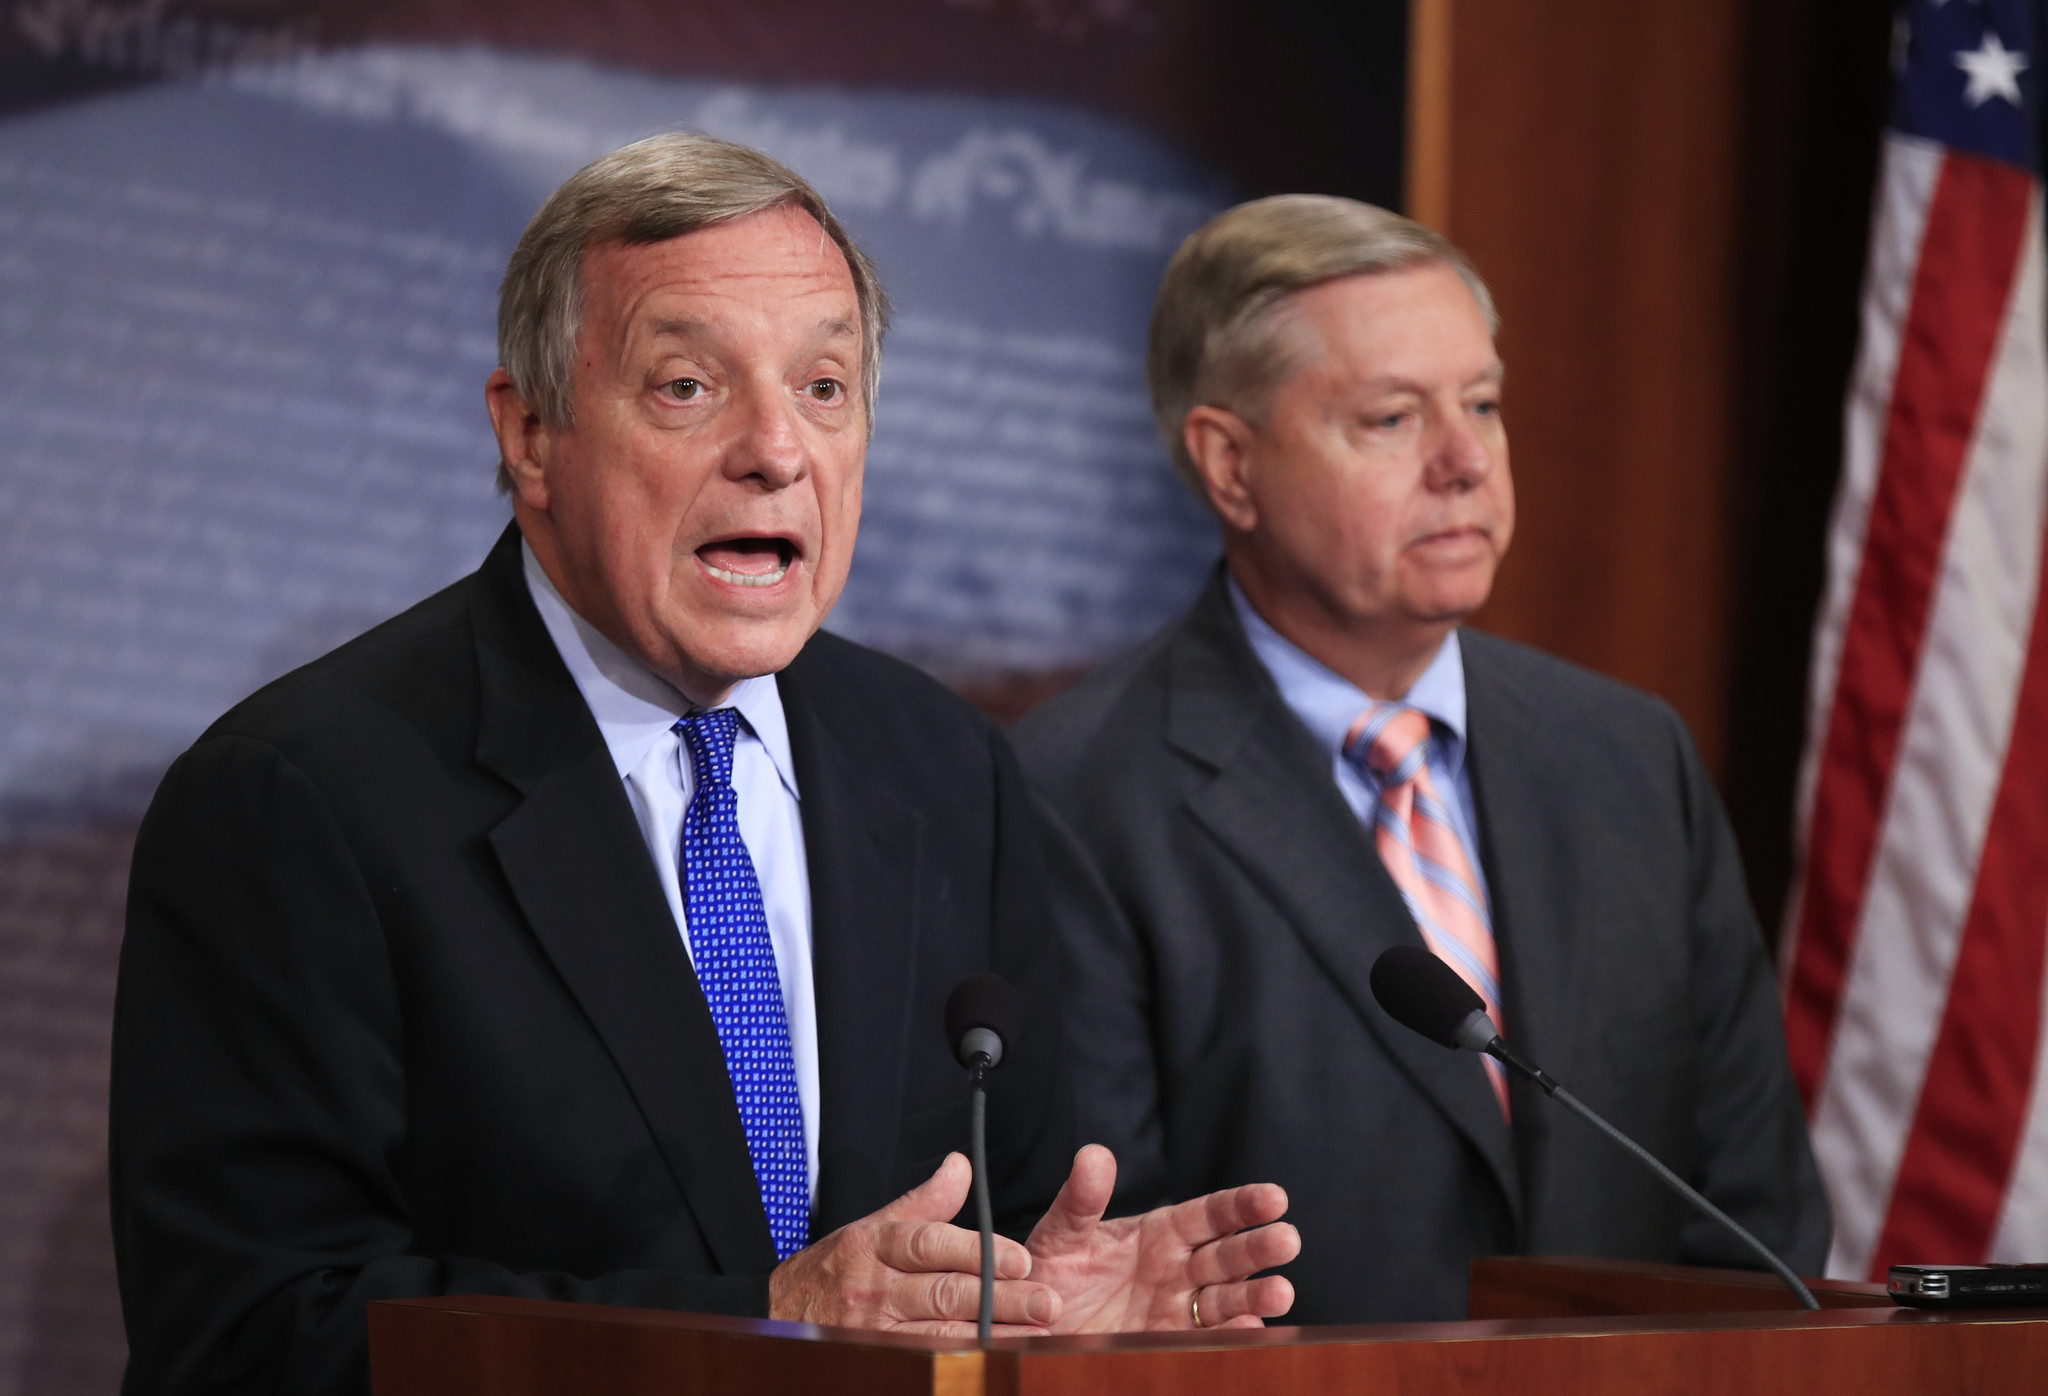 Durbin Asks For Quick Approval Of DREAM Act As Democrats Assail Trump Over DACA